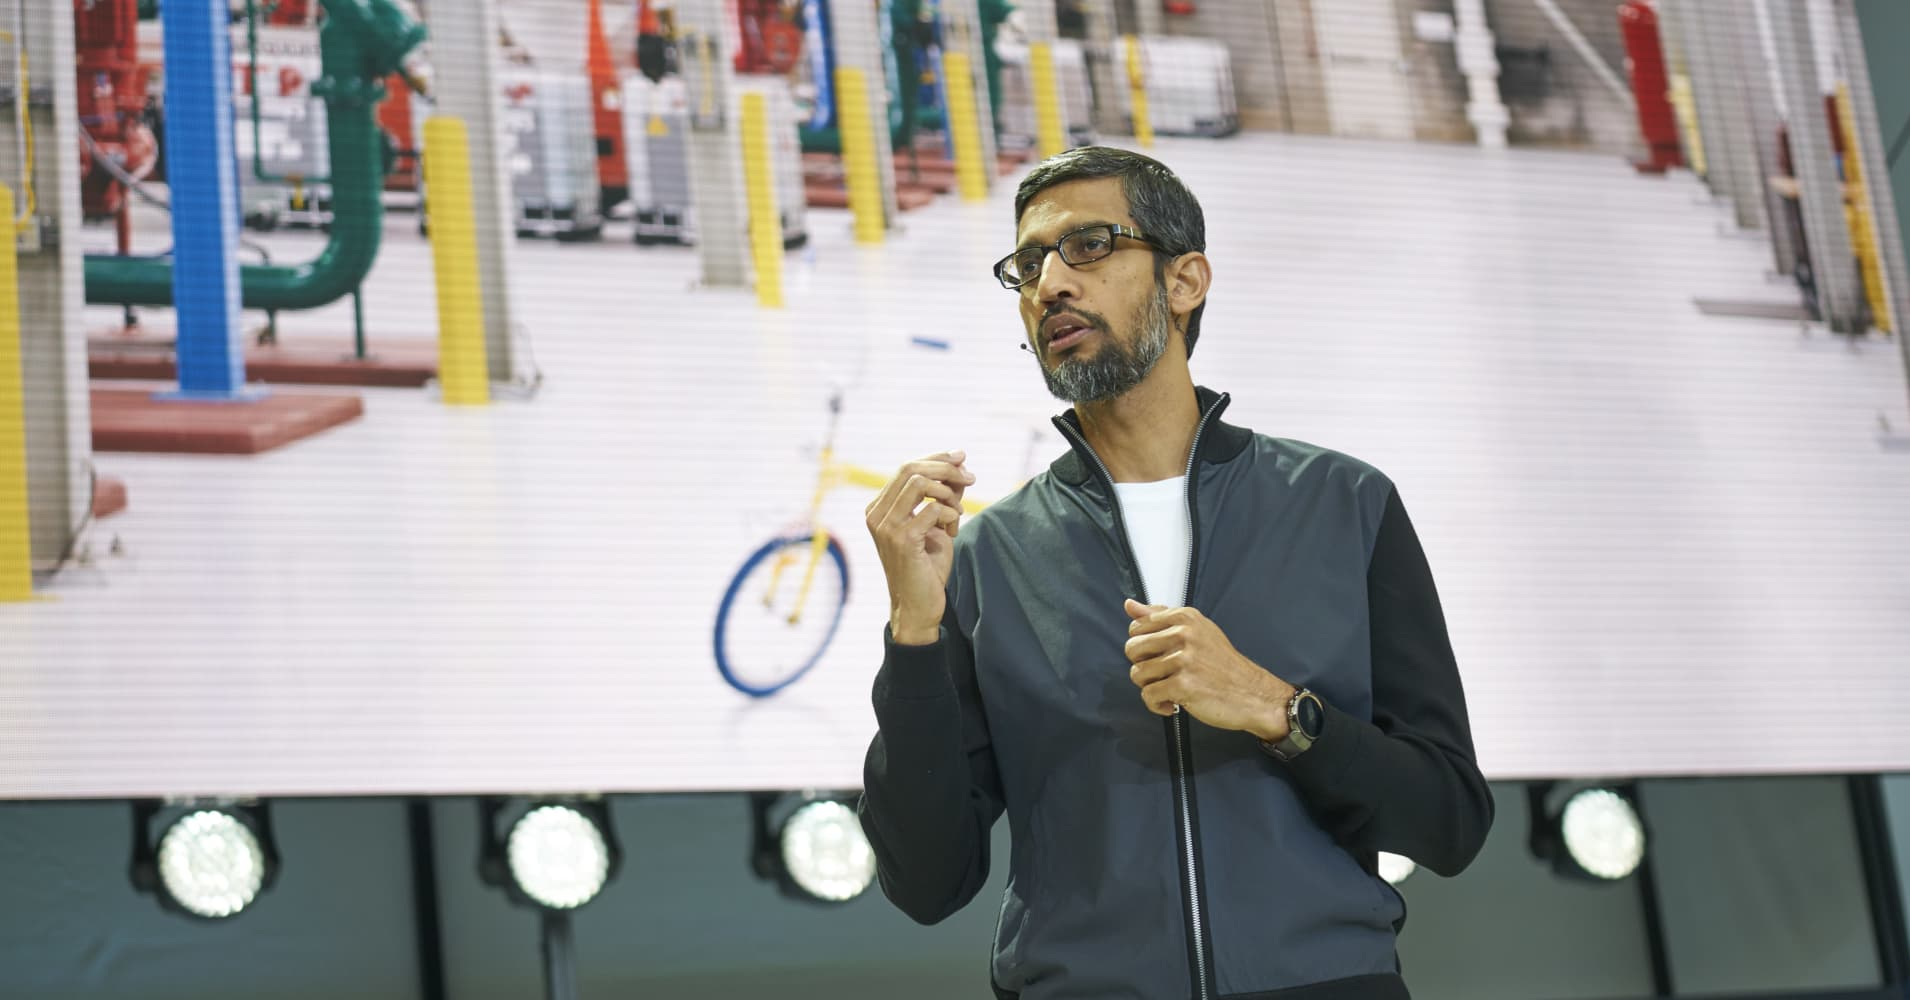 Google CEO: 'The bigger you are, the more you may be at a disadvantage'